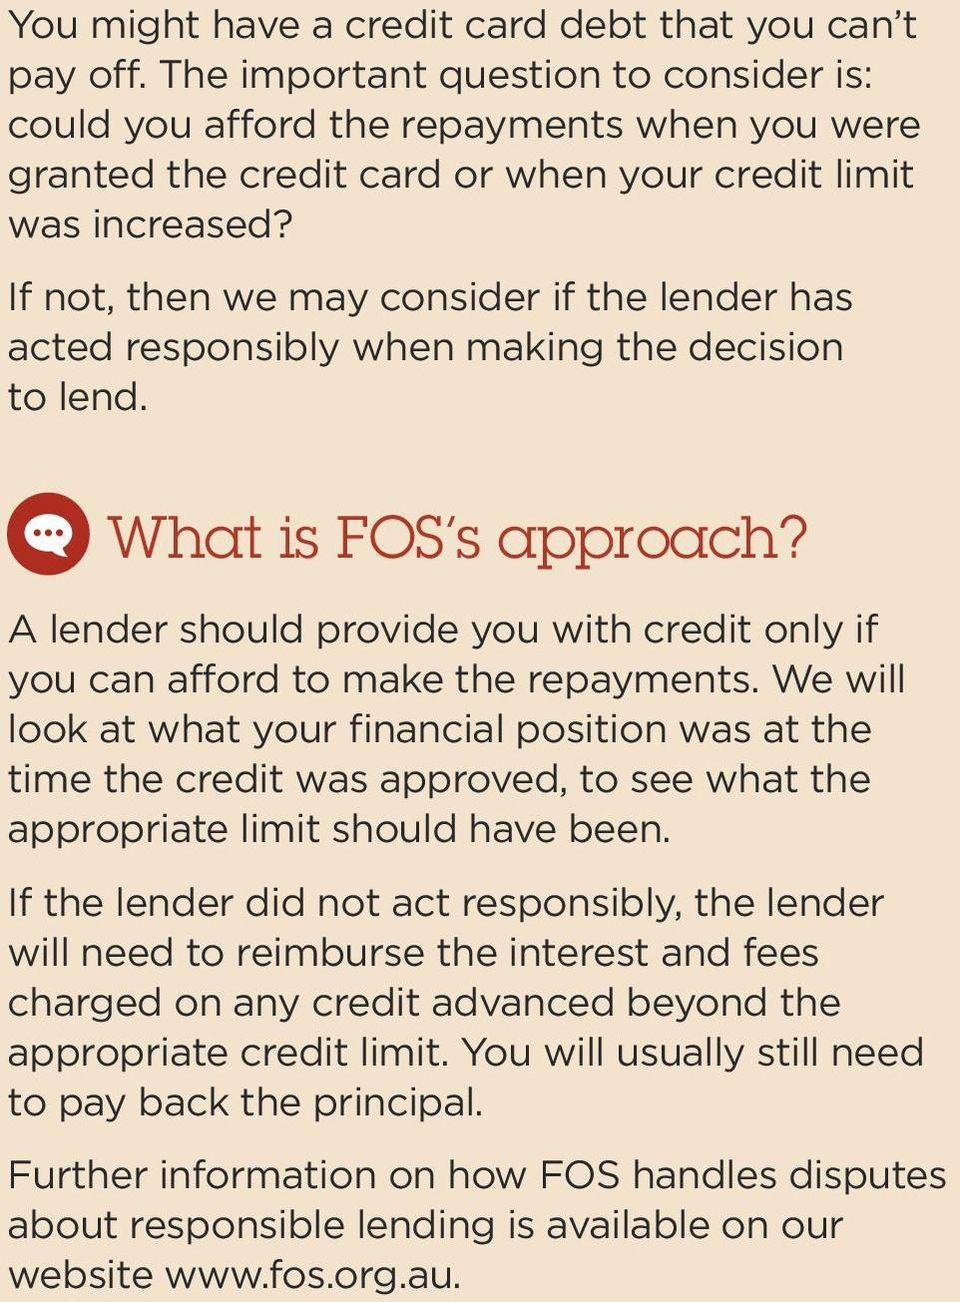 If not, then we may consider if the lender has acted responsibly when making the decision to lend. What is FOS s approach?